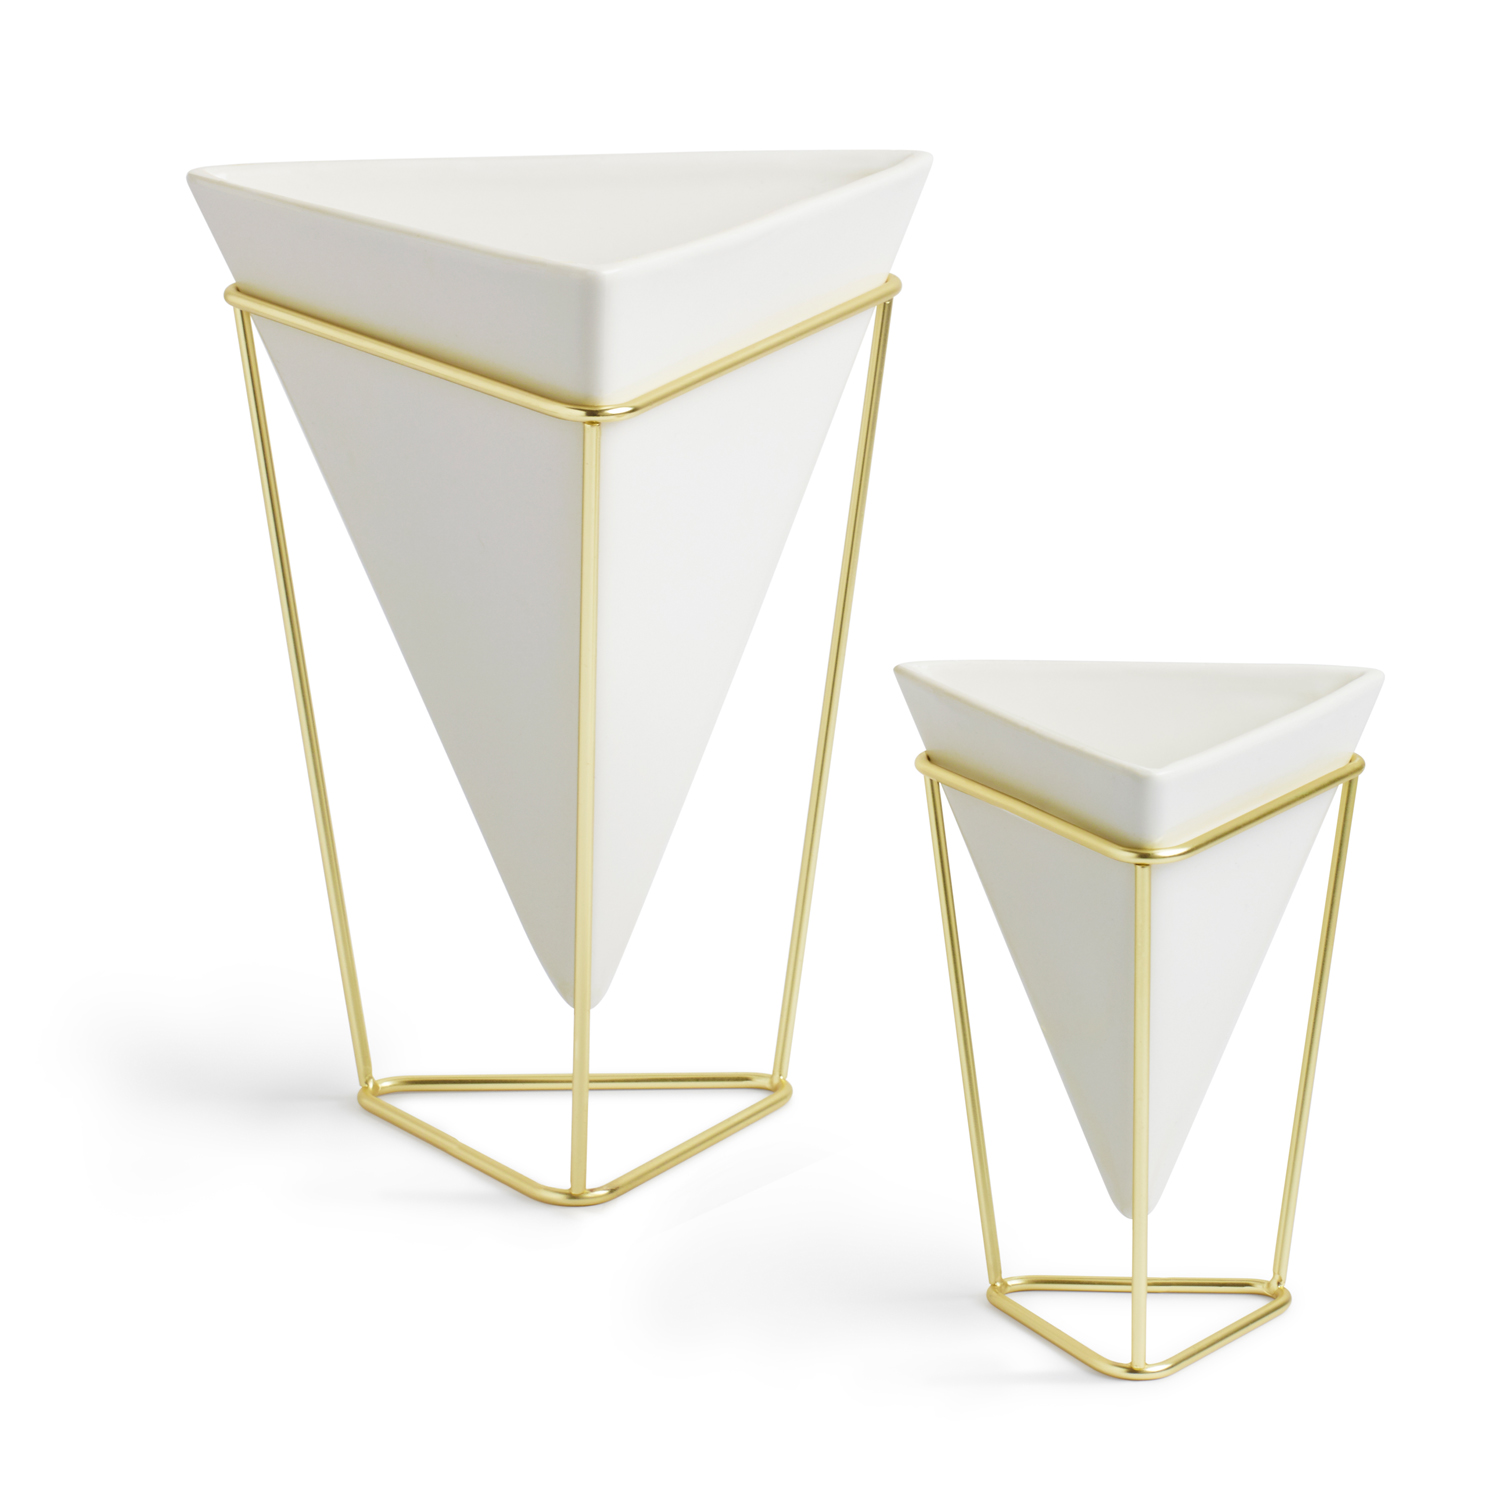 trigg les vases vide poches 2 en 1 par umbra guten morgwen. Black Bedroom Furniture Sets. Home Design Ideas